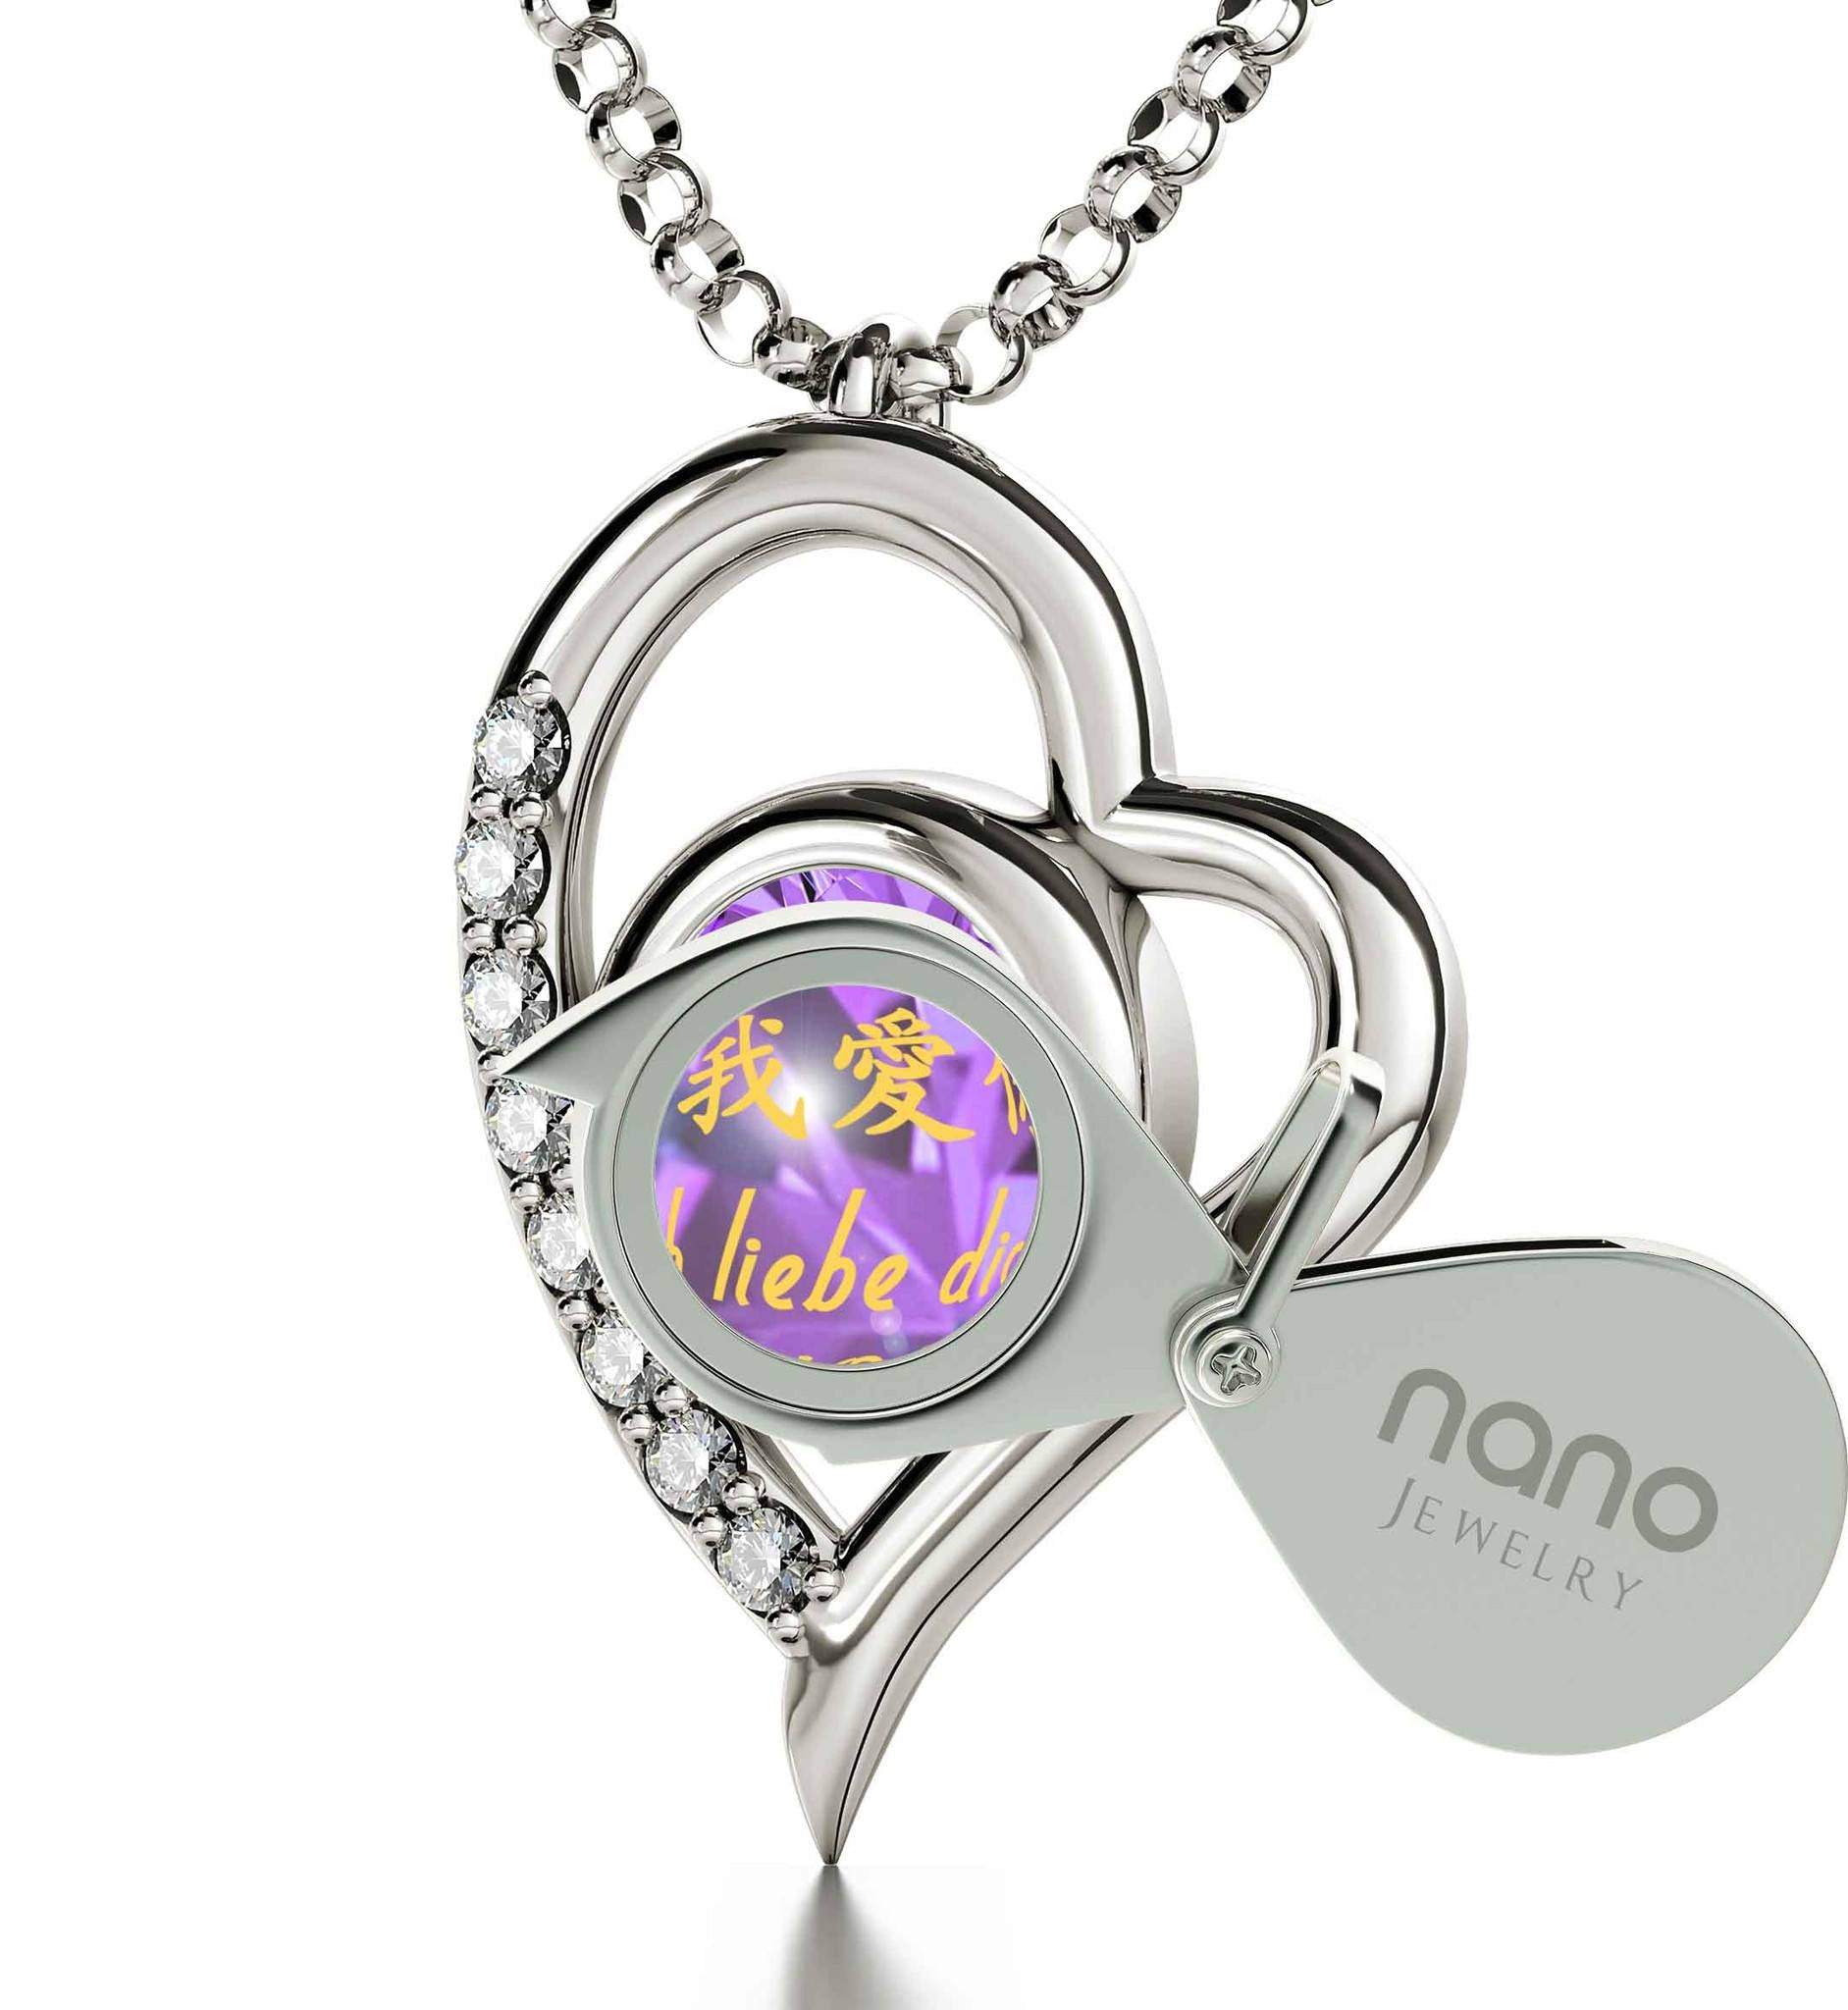 "Girlfriend Christmas Presents: ""Ti Amo"", CZ Purple Stone, Good Anniversary Gifts for Her by Nano Jewelry"